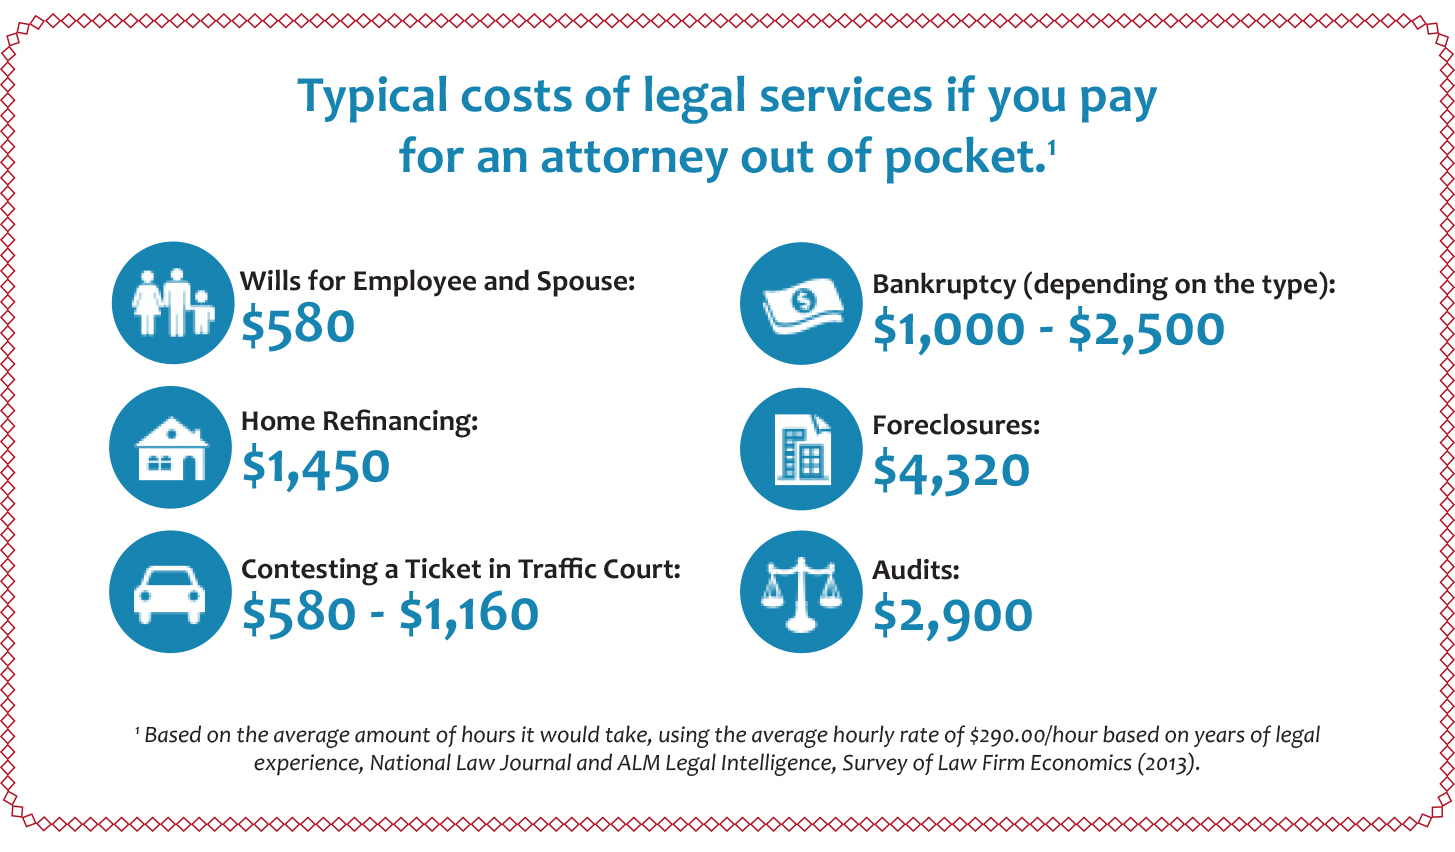 Typical costs of legal services